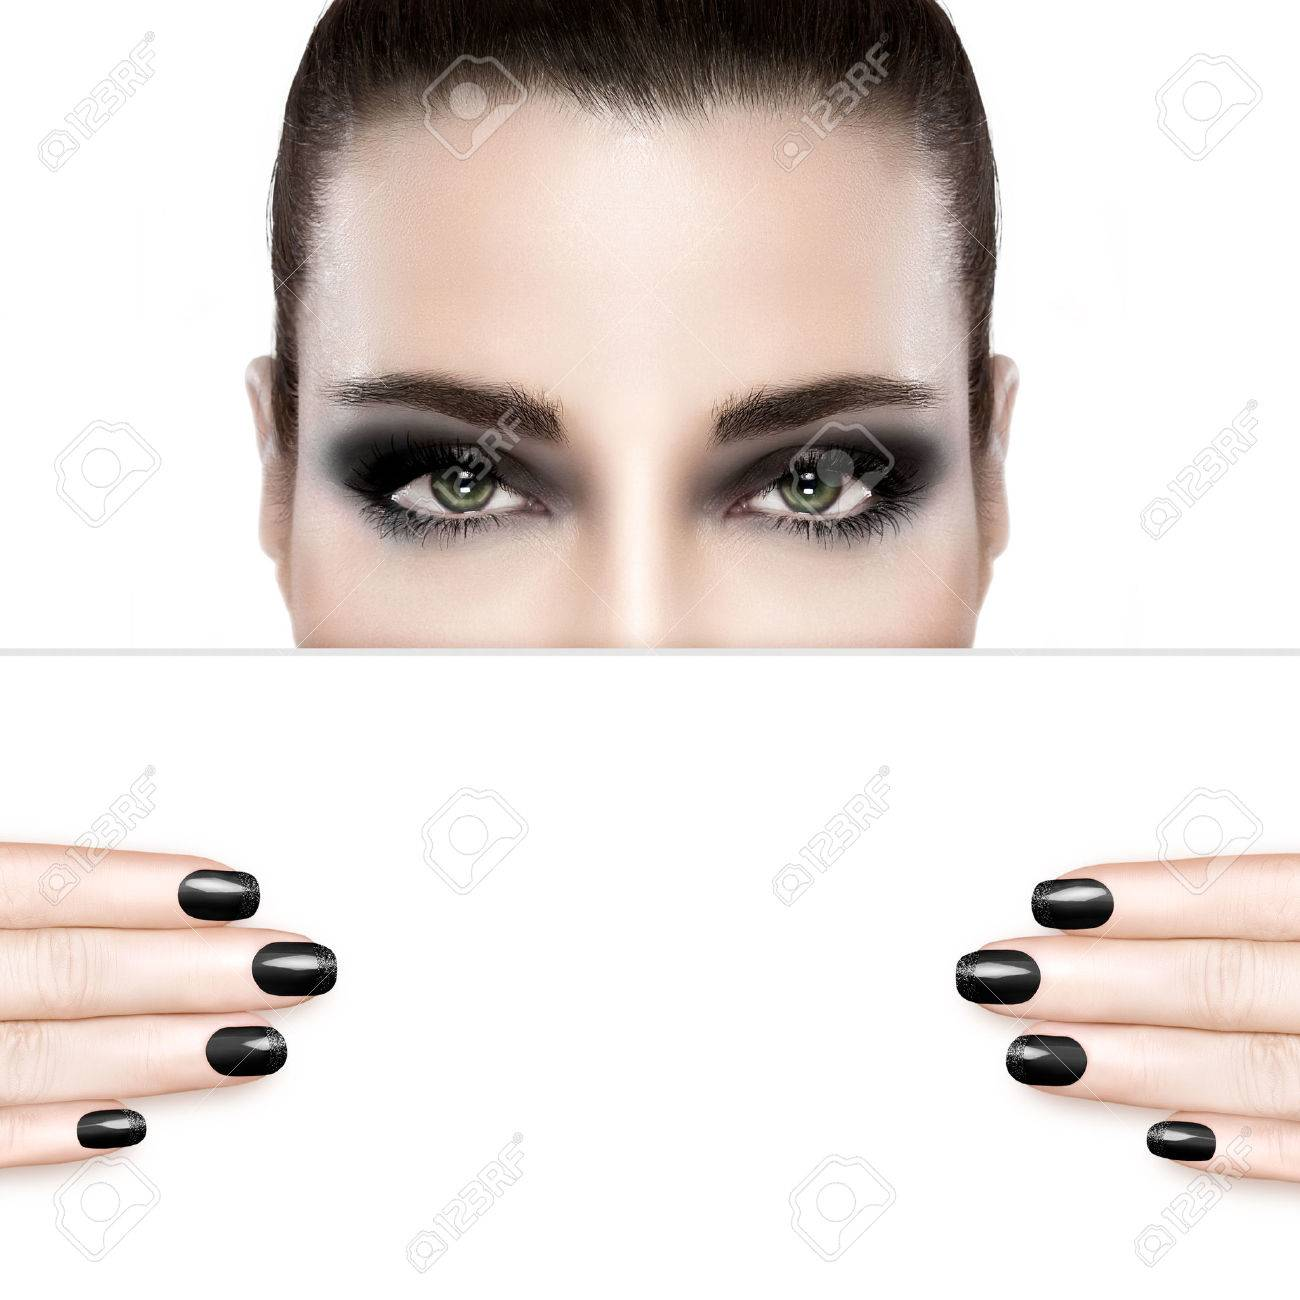 Dark smoky beauty and nail art concept with a woman wearing creative dark eye makeup holding a blank white card template covering her mouth with matching dark manicured nails. Portrait isolated on white with copy space for text. - 46755164